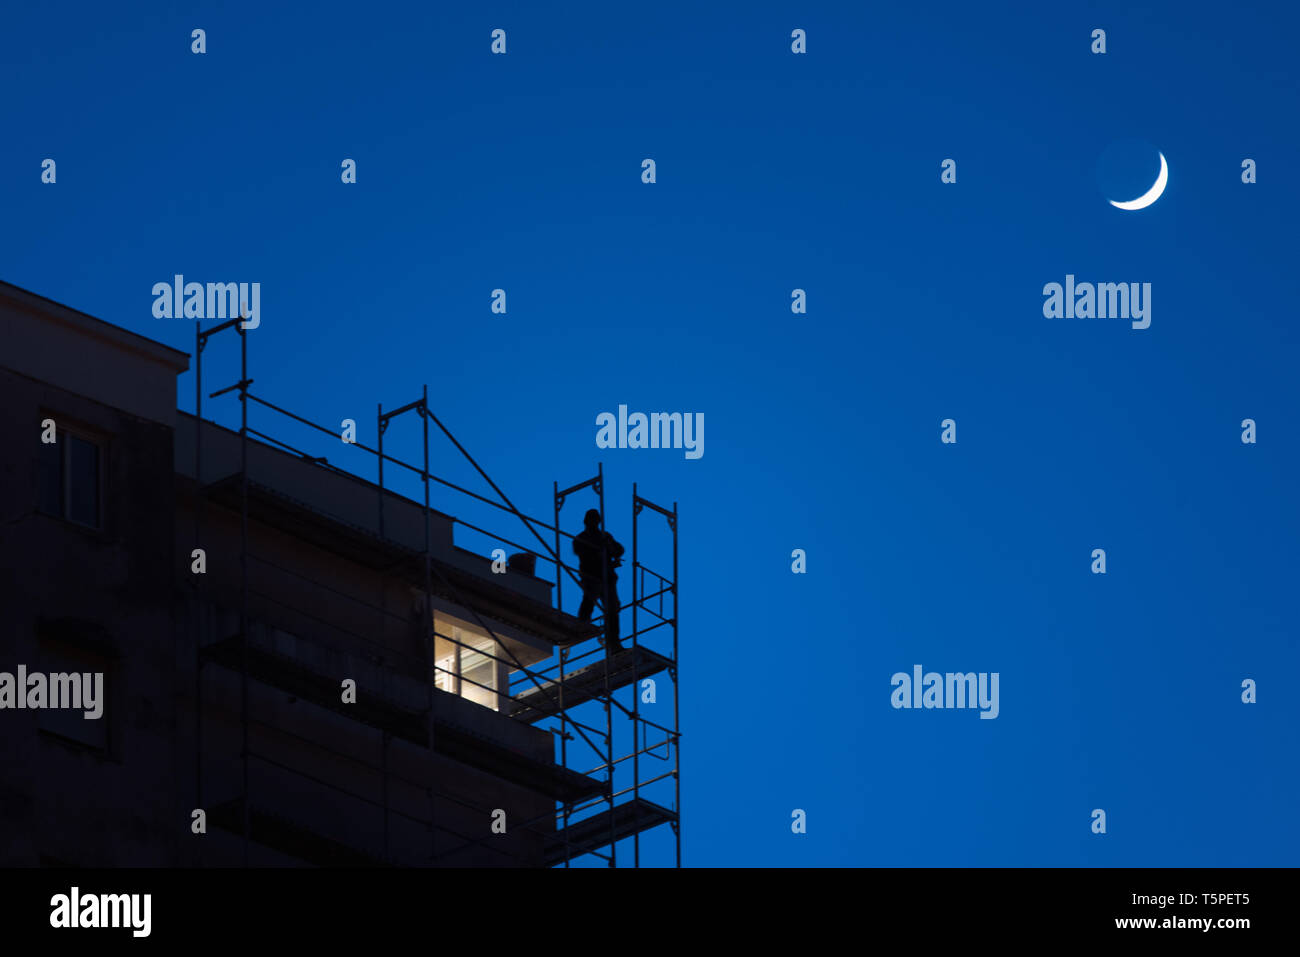 Silhouette of a man working high on a skyscraper scaffolding at twilight, dangerous work, security at work, blue sky with moon in the background - Stock Image